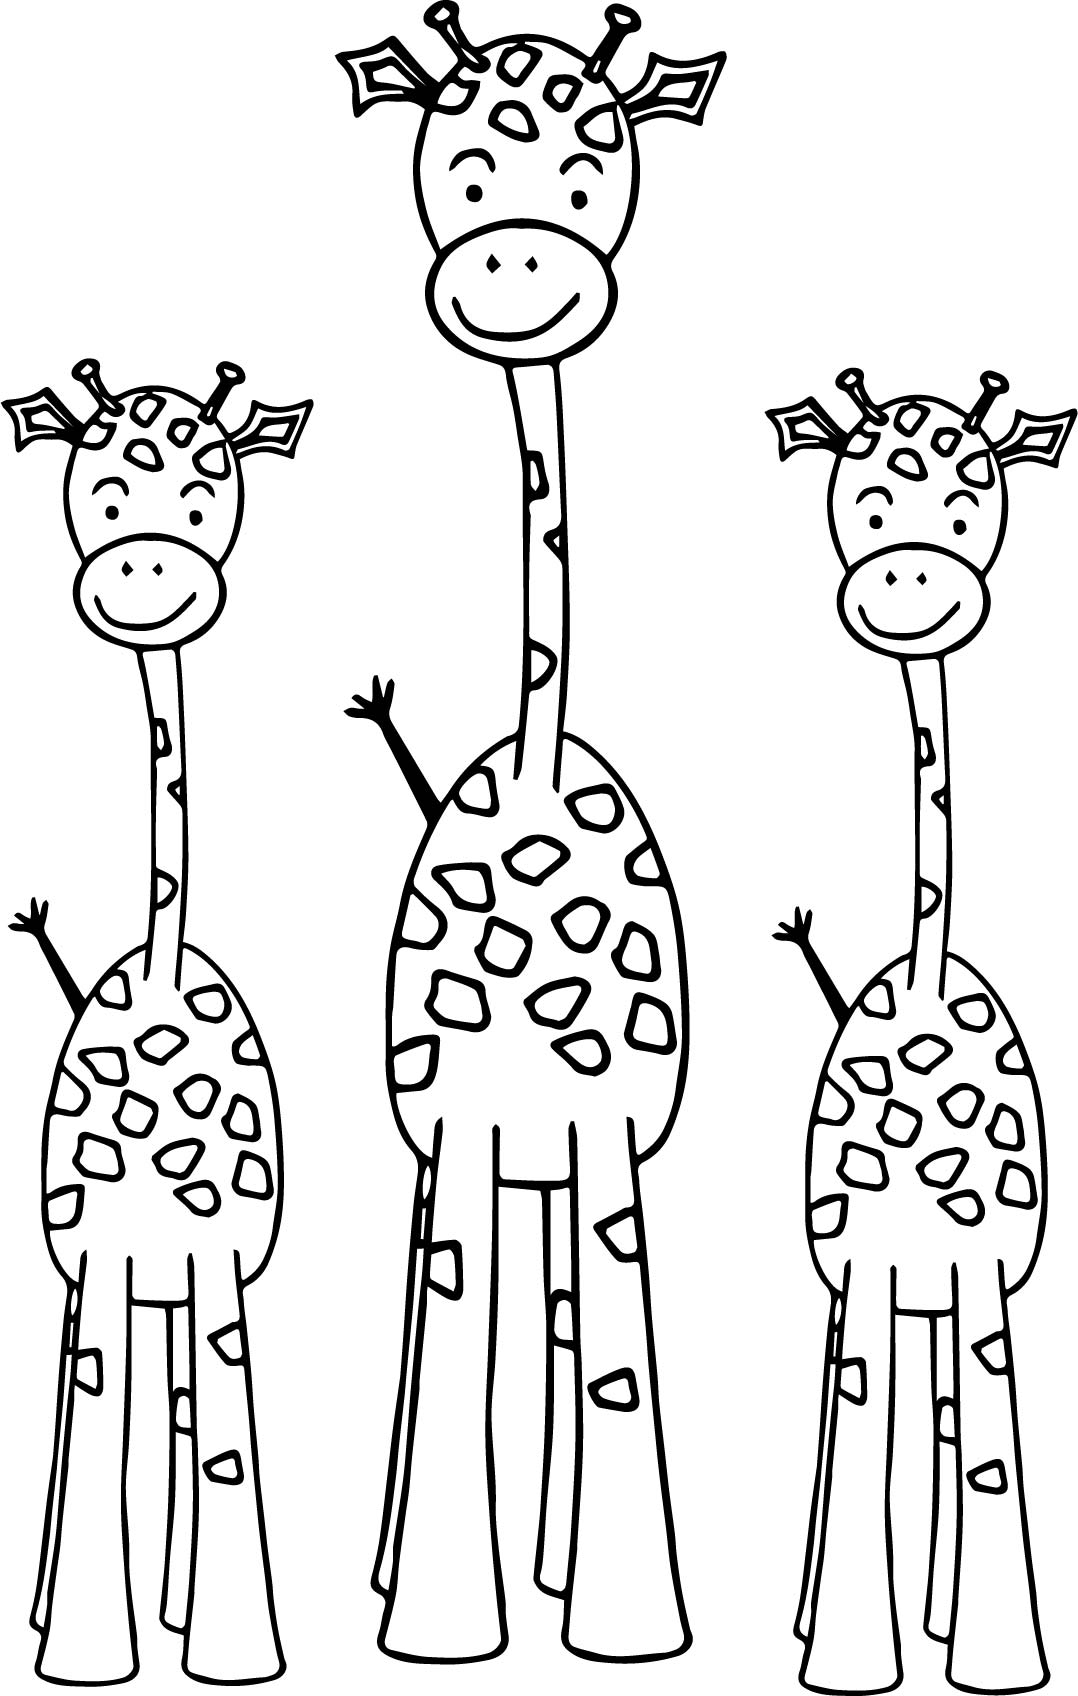 rickety giraffe coloring page - Giraffes Coloring Pages